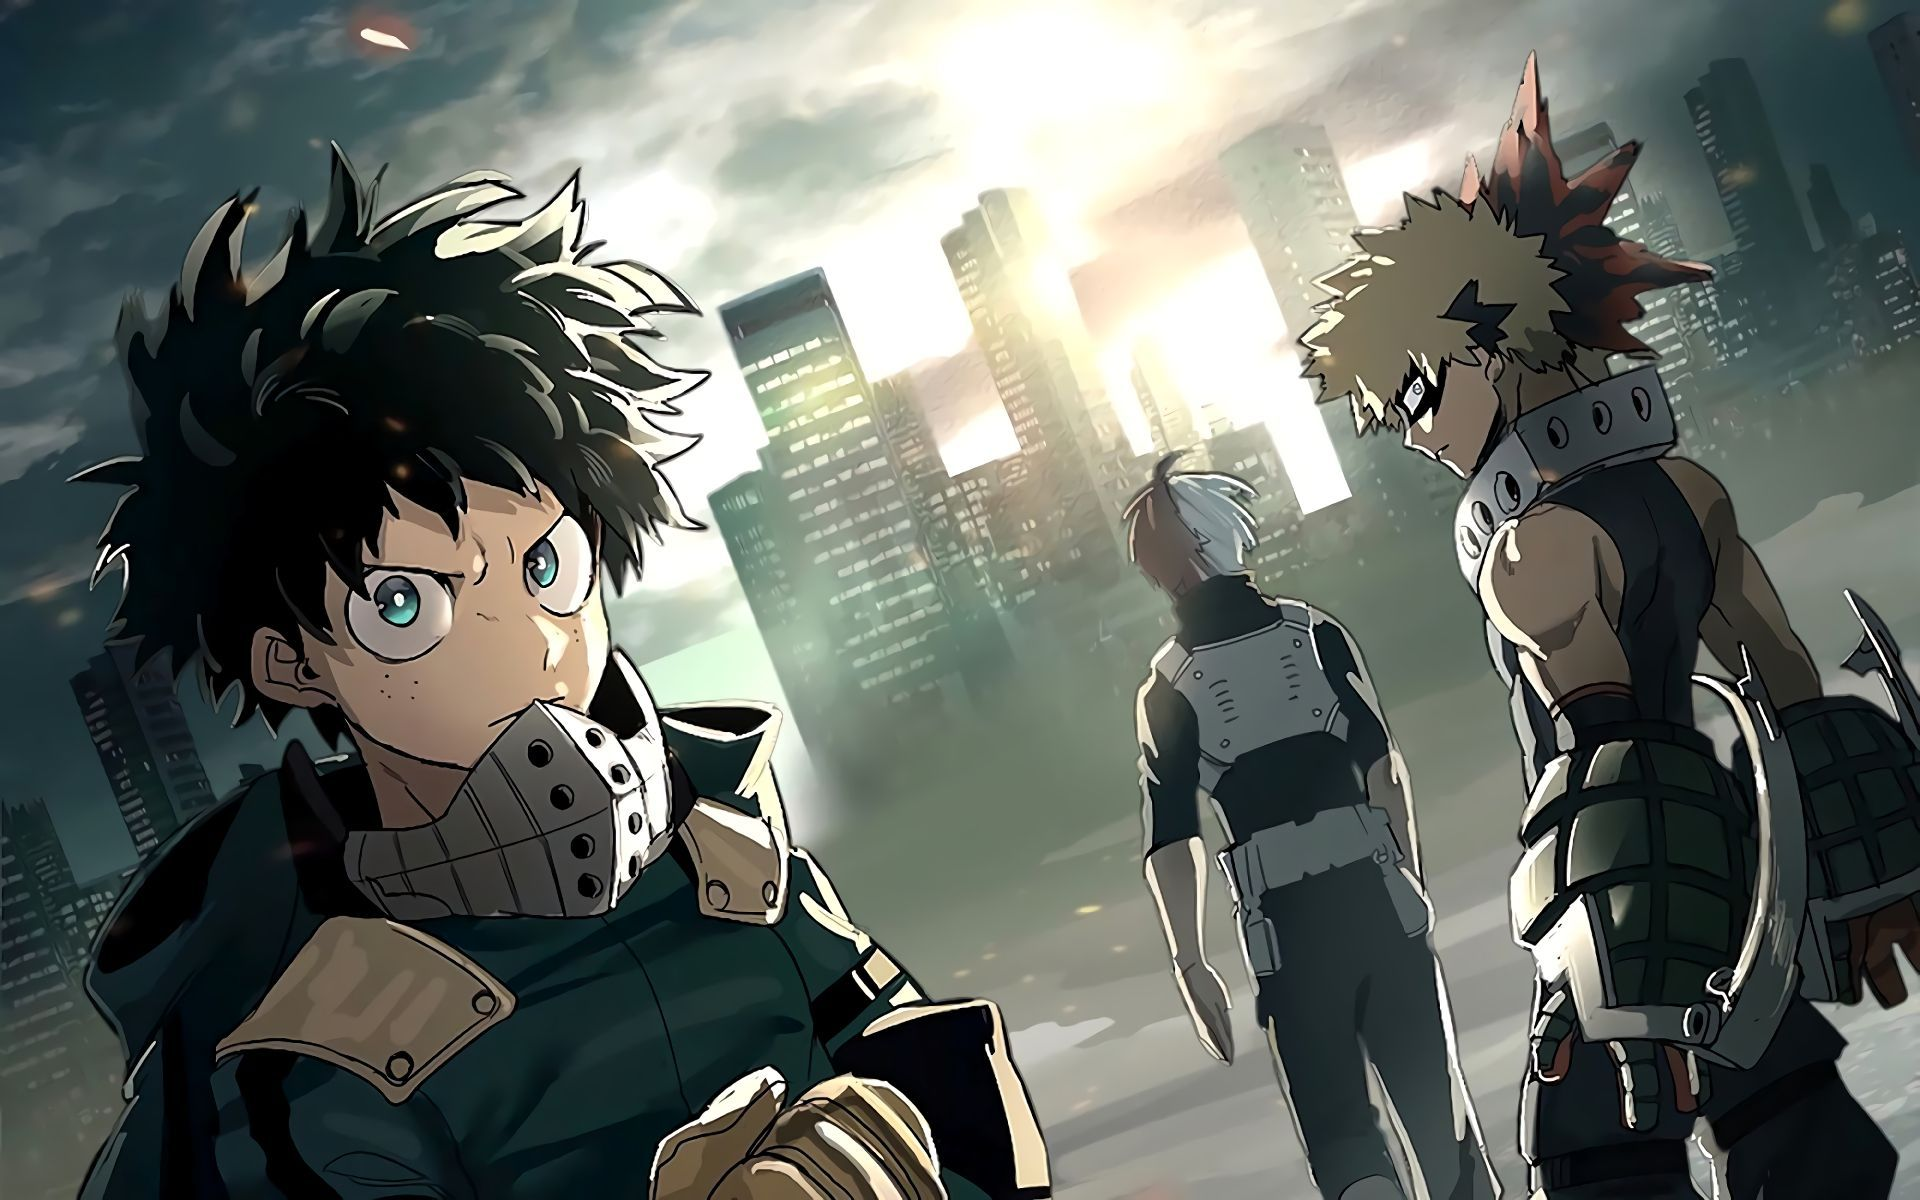 The Demons Quirk Bnha Fanfic Back To The Dorms Hero Wallpaper Anime Computer Wallpaper Anime Backgrounds Wallpapers